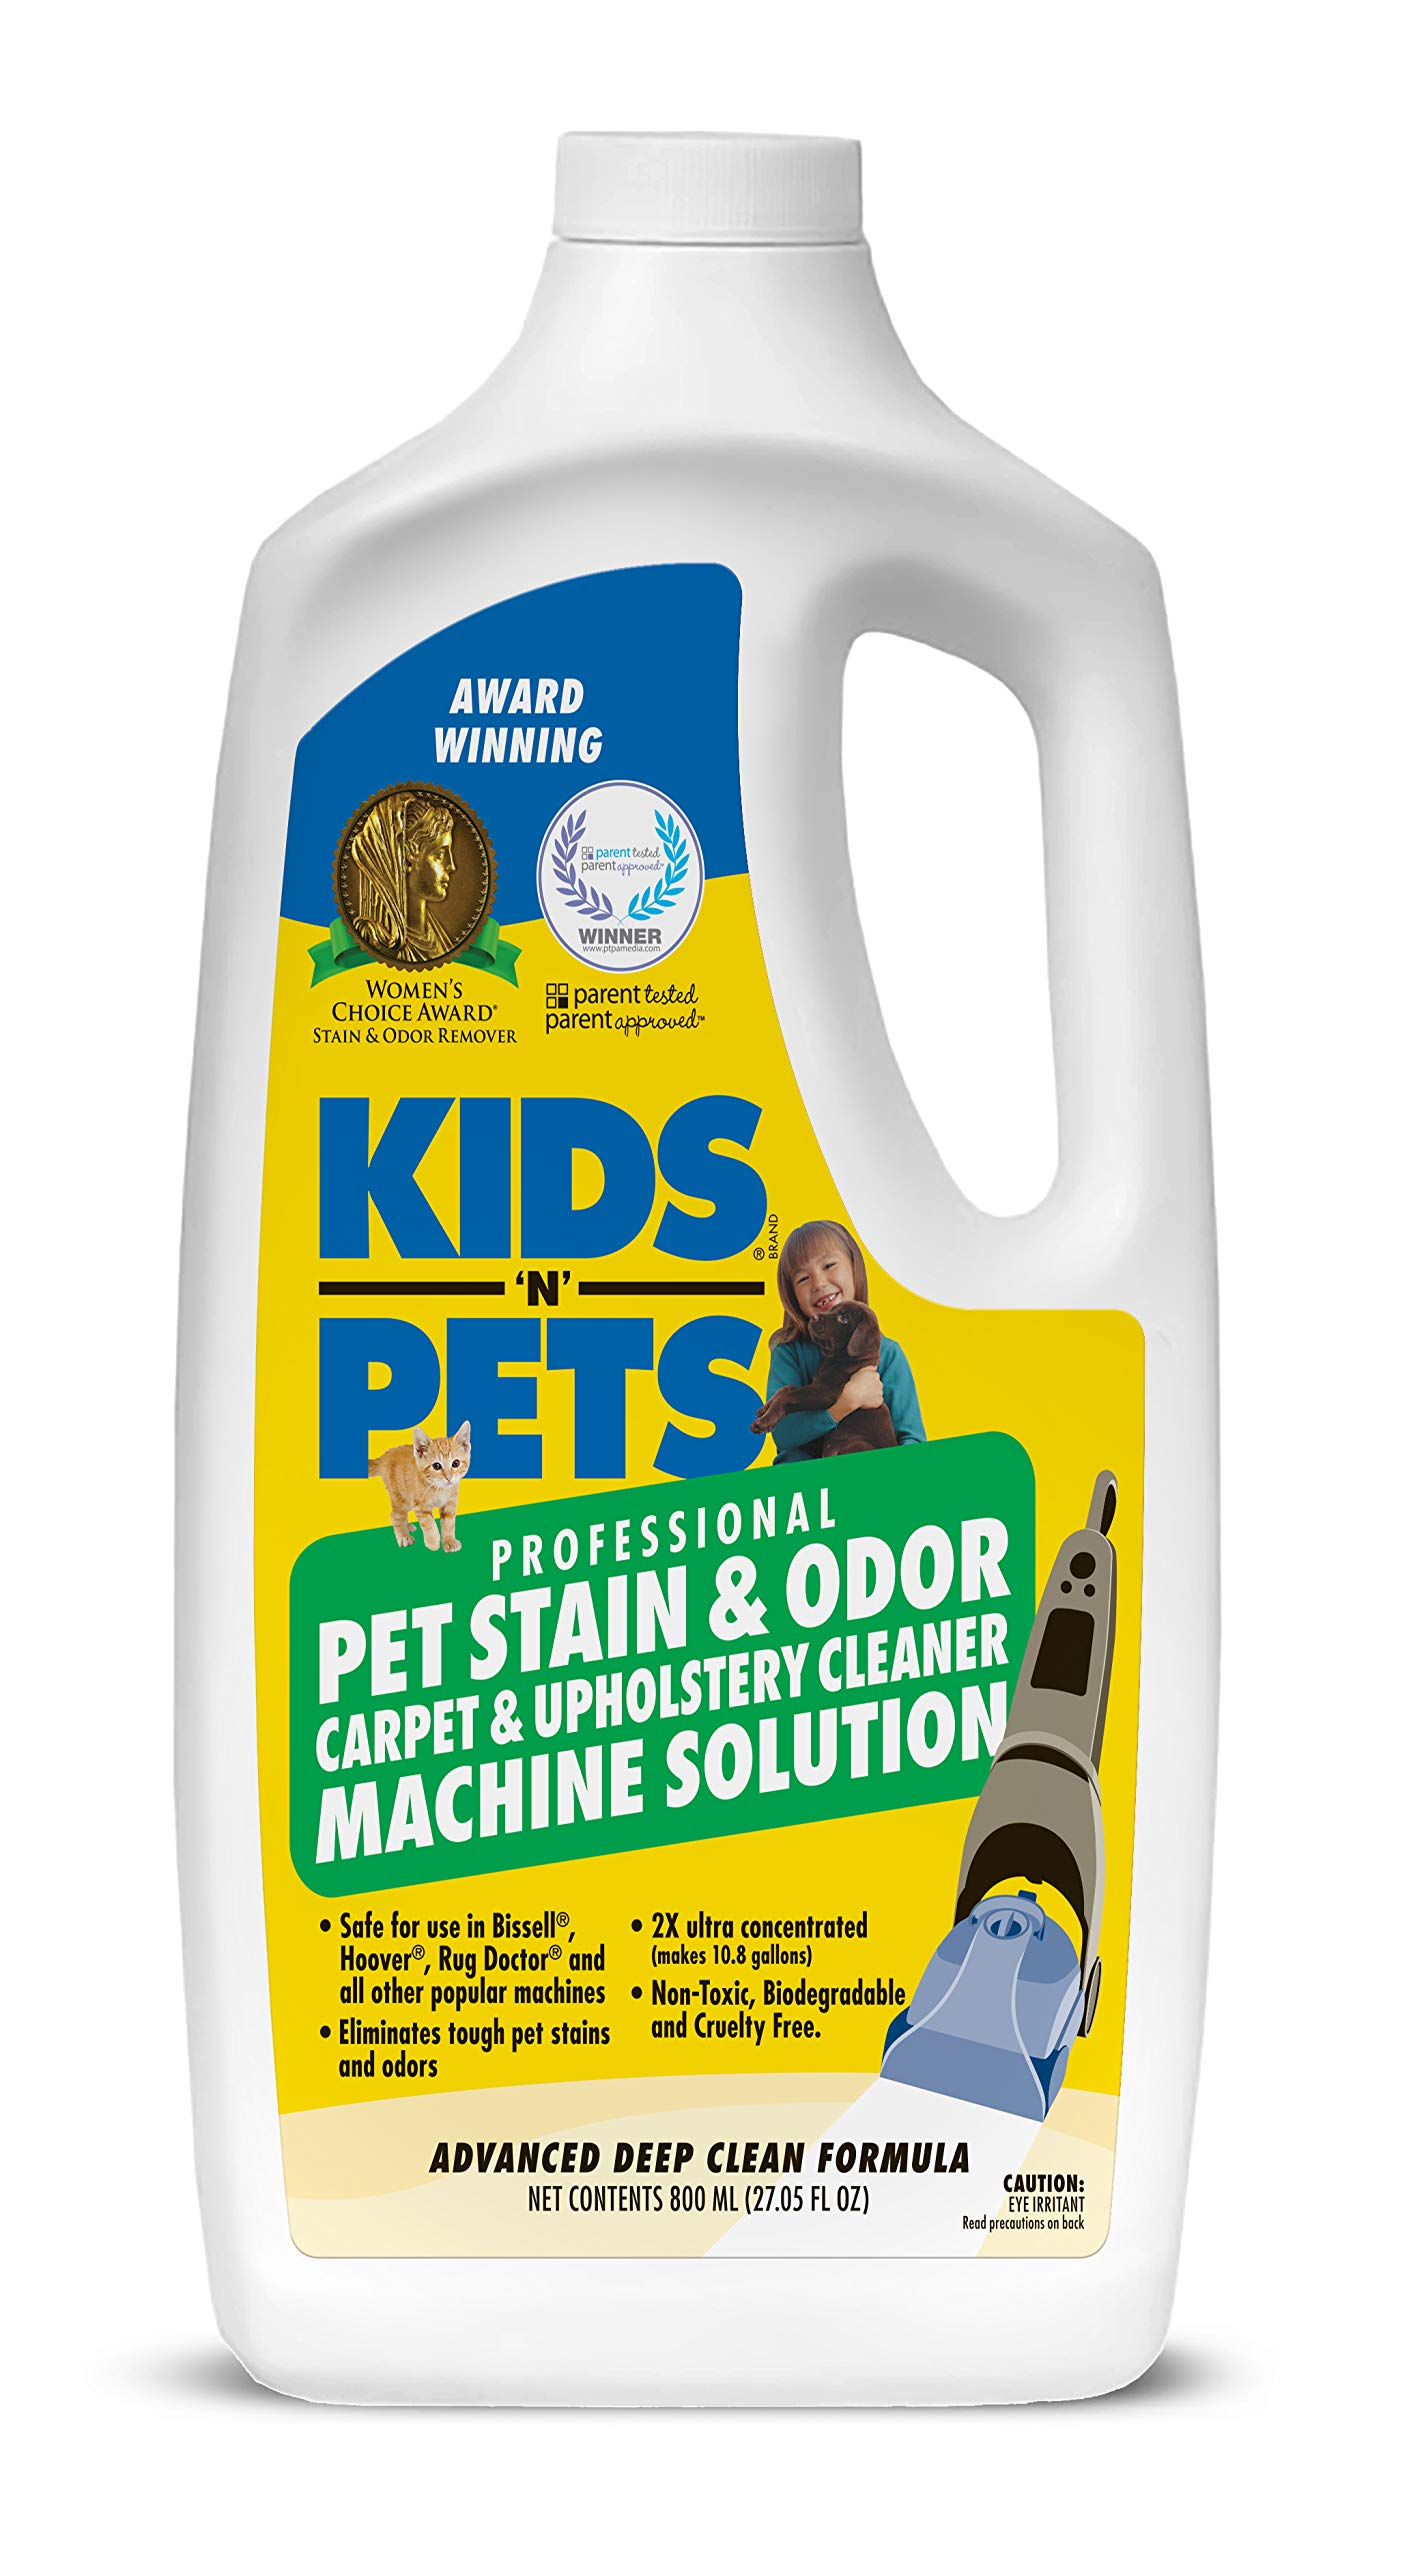 KIDS 'N' PETS Pet Stain & Odor - Carpet & Upholstery Cleaner Machine Solution – 27.05 oz (800 ml)   Professional Strength Formula Deeply Cleans Carpet & Upholstery   Non-Toxic & Child Safe